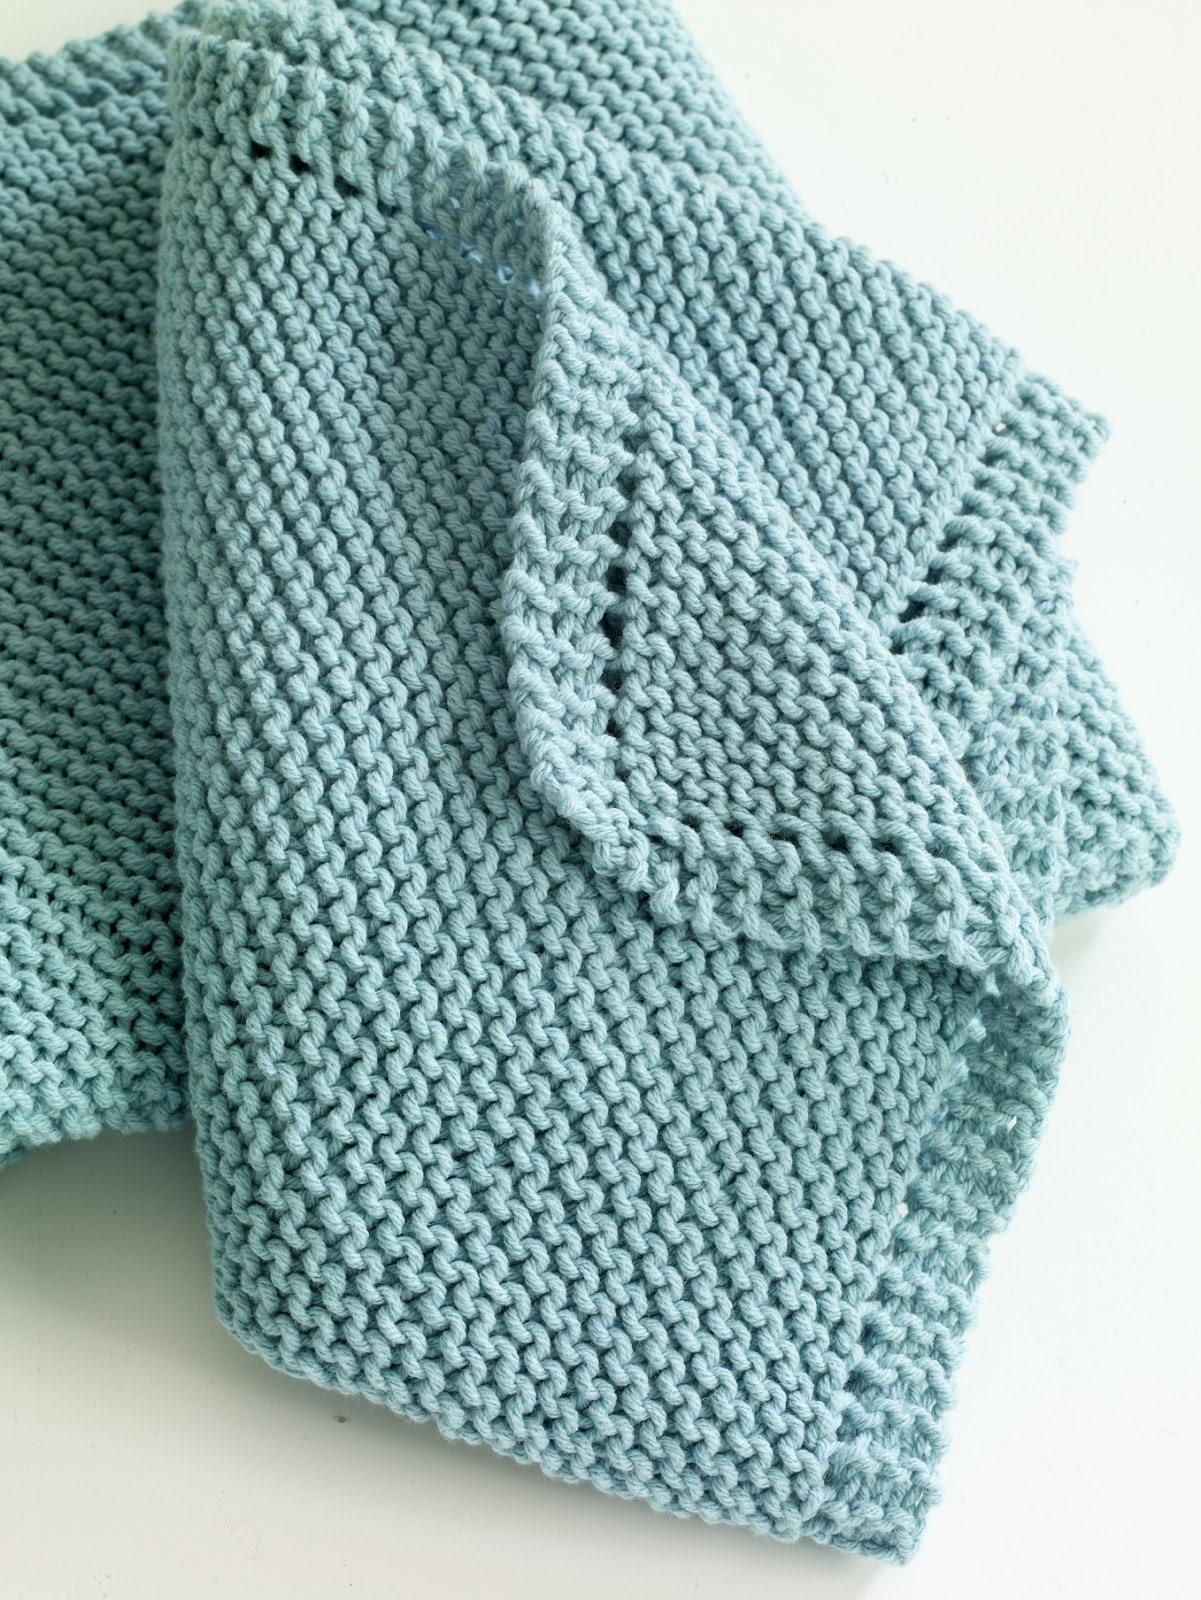 Free Knitting Patterns For Baby Blankets : Serenity Knits: December 2012